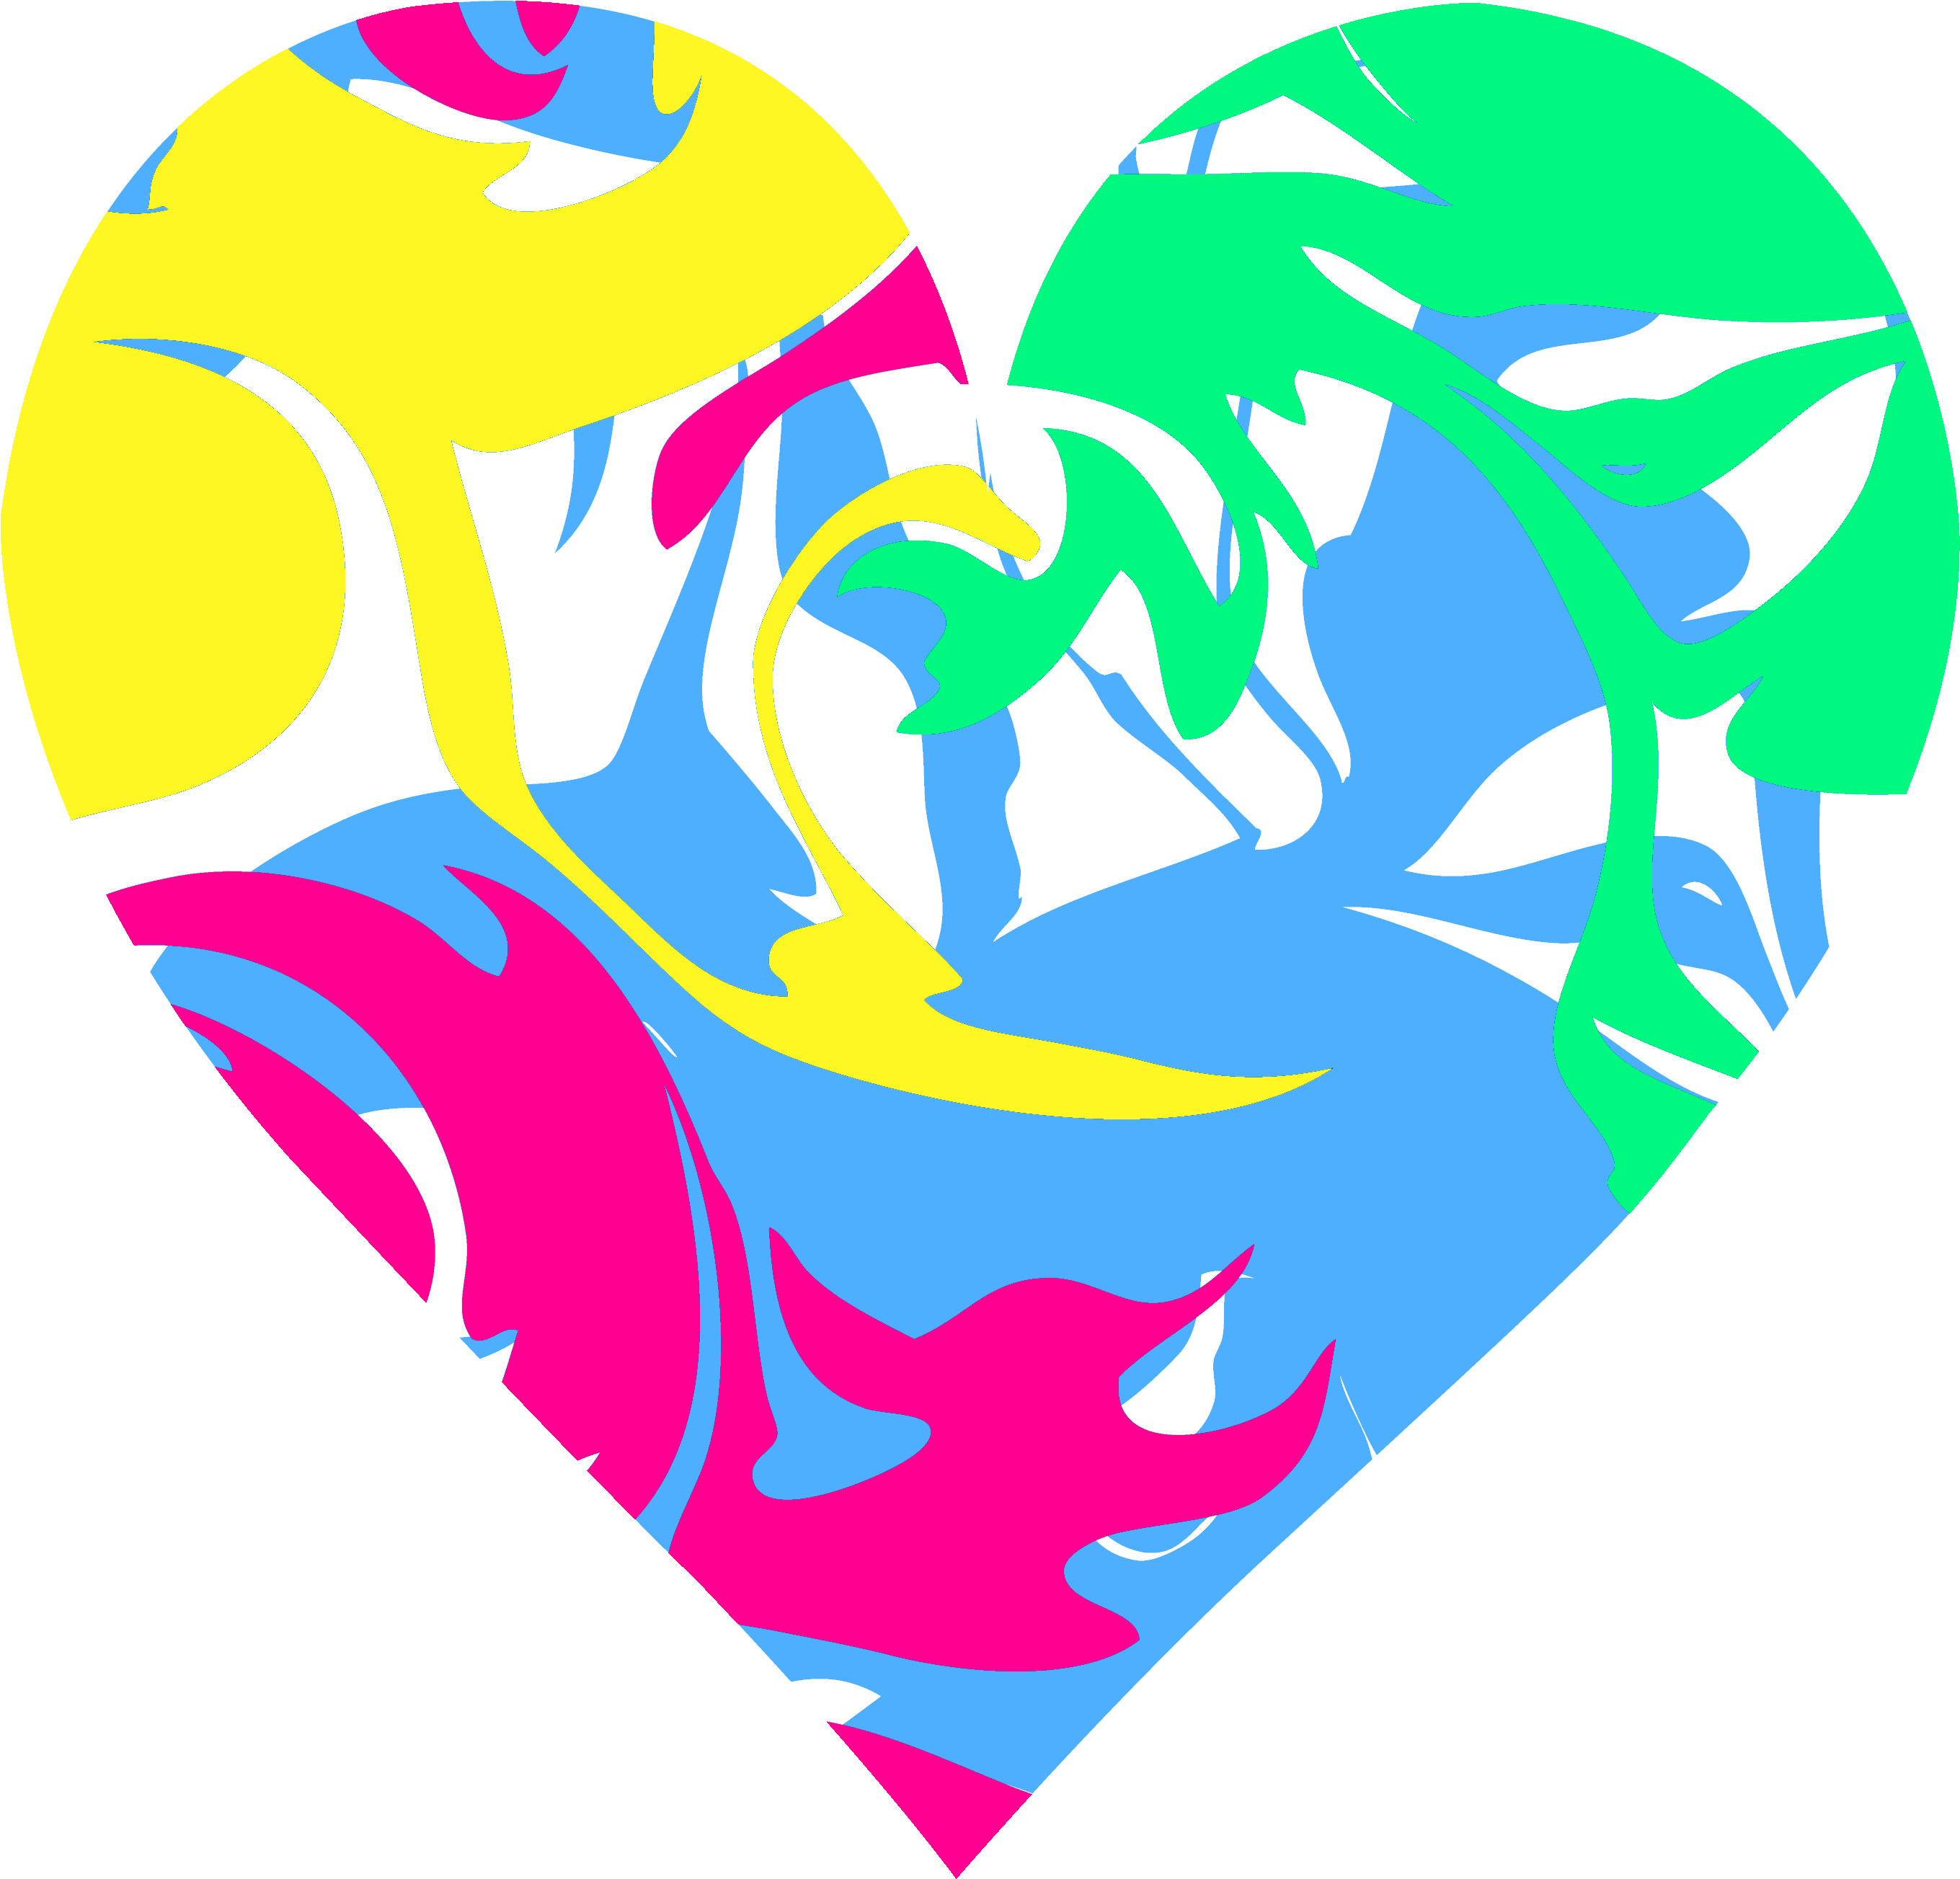 Hearts pretty colorful x. Heart clipart water royalty free